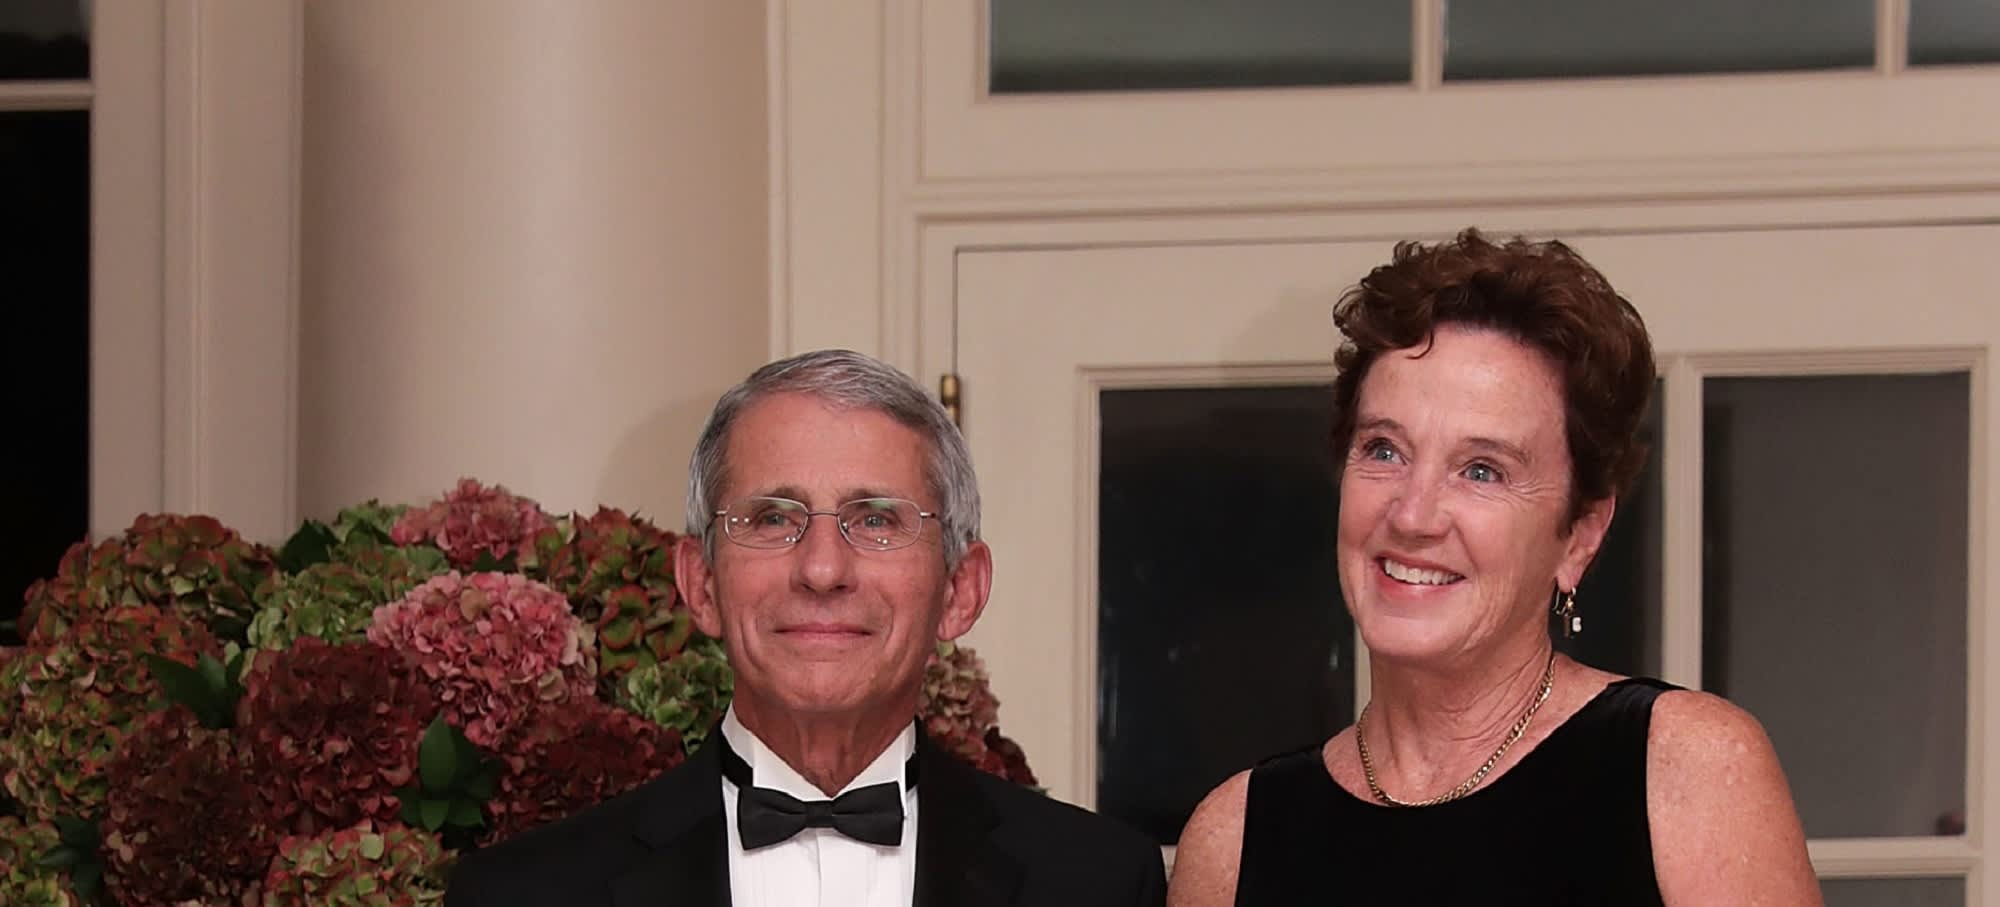 White House advisor Dr. Fauci works 20-hour days and his wife reminds him to eat, sleep and drink water